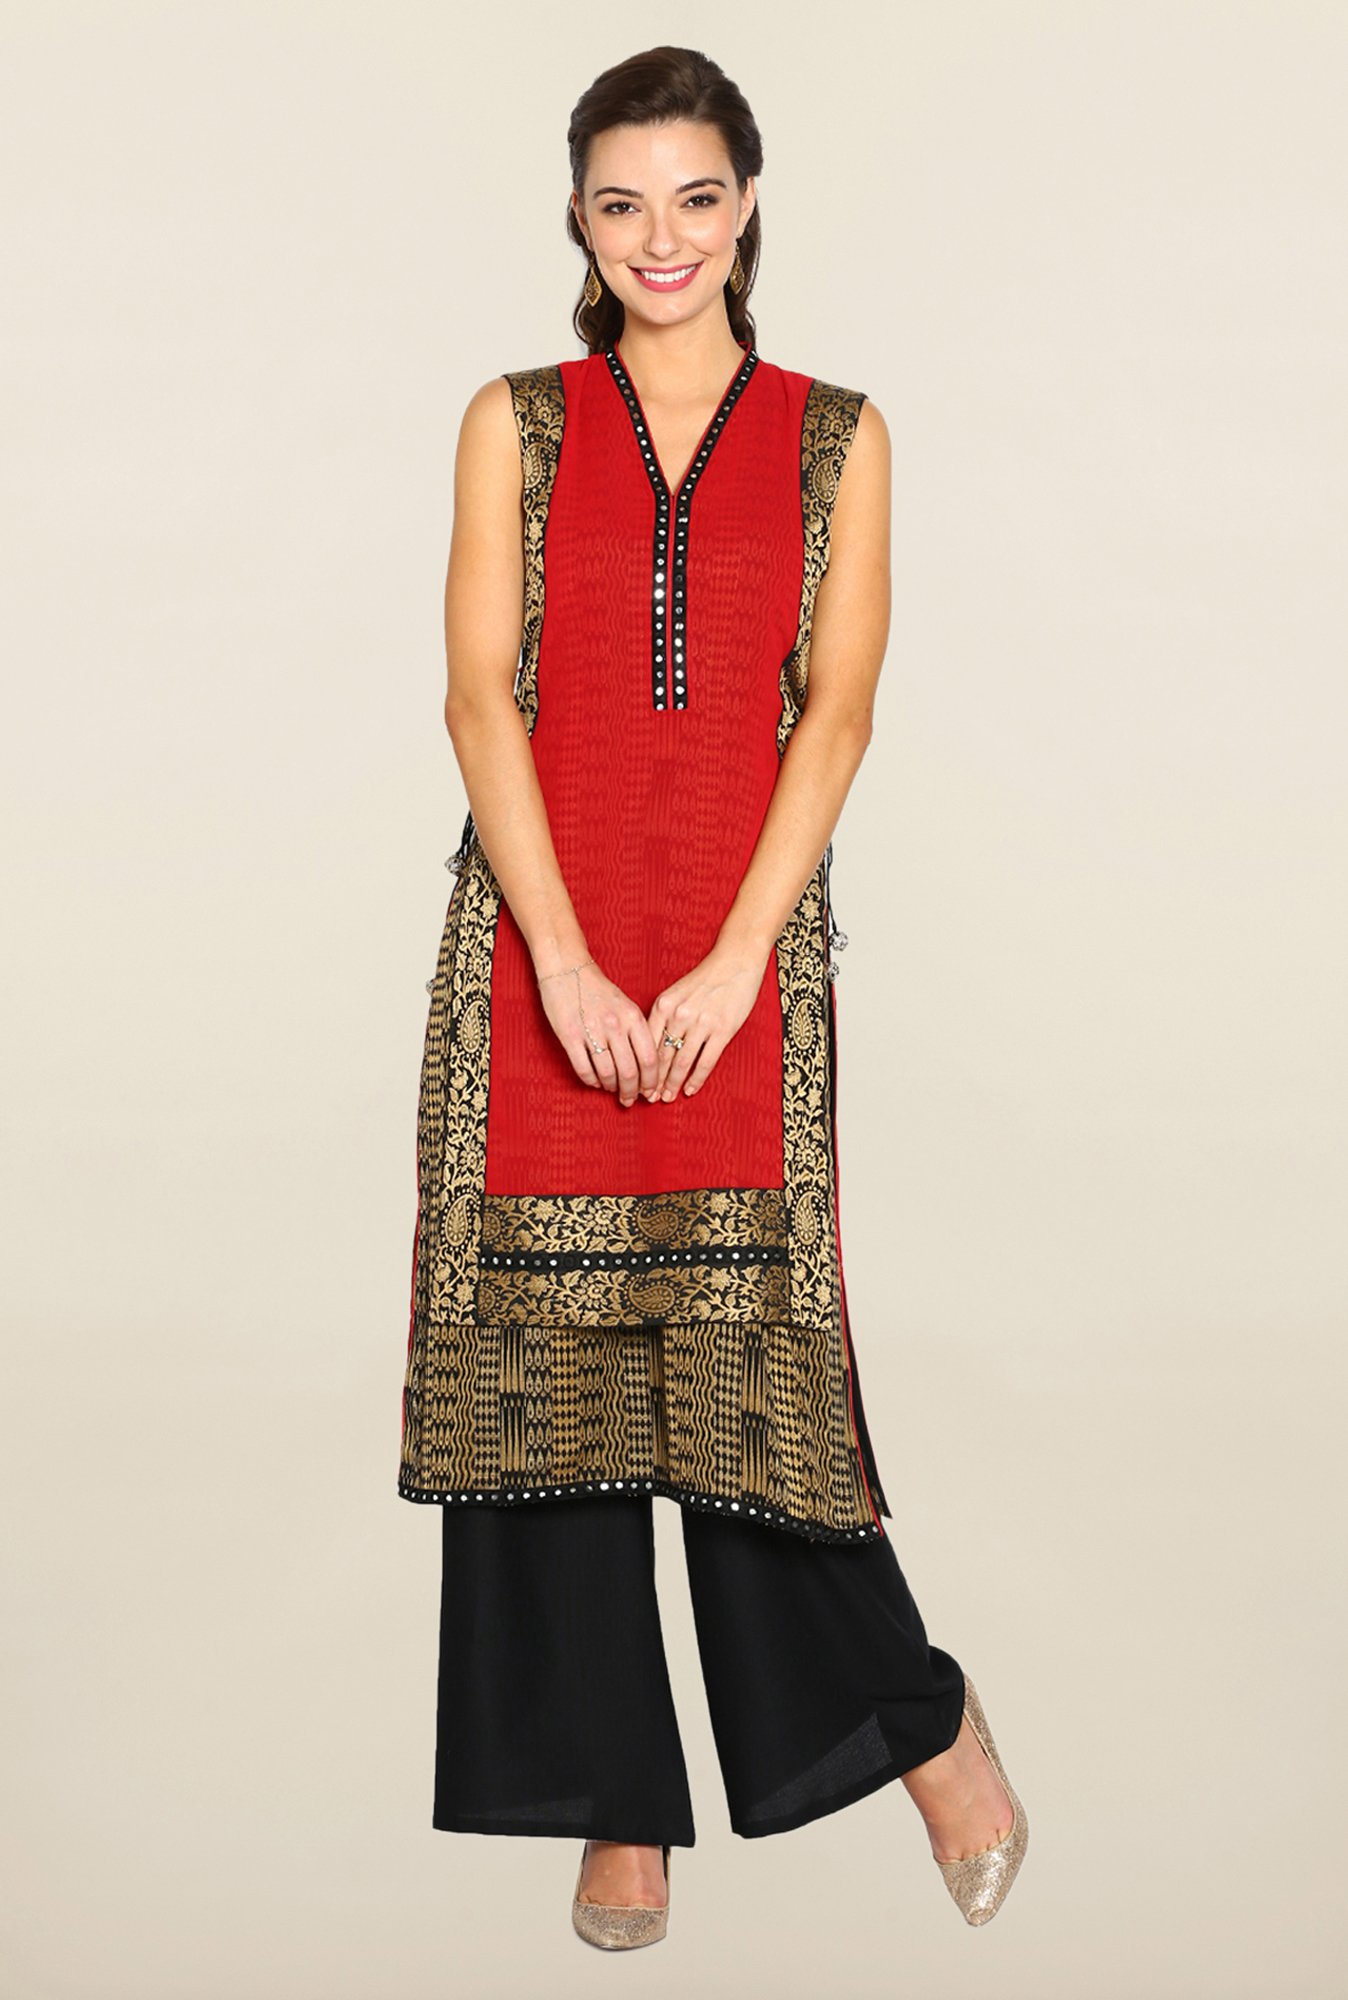 Soch Red & Black Printed Suit Set